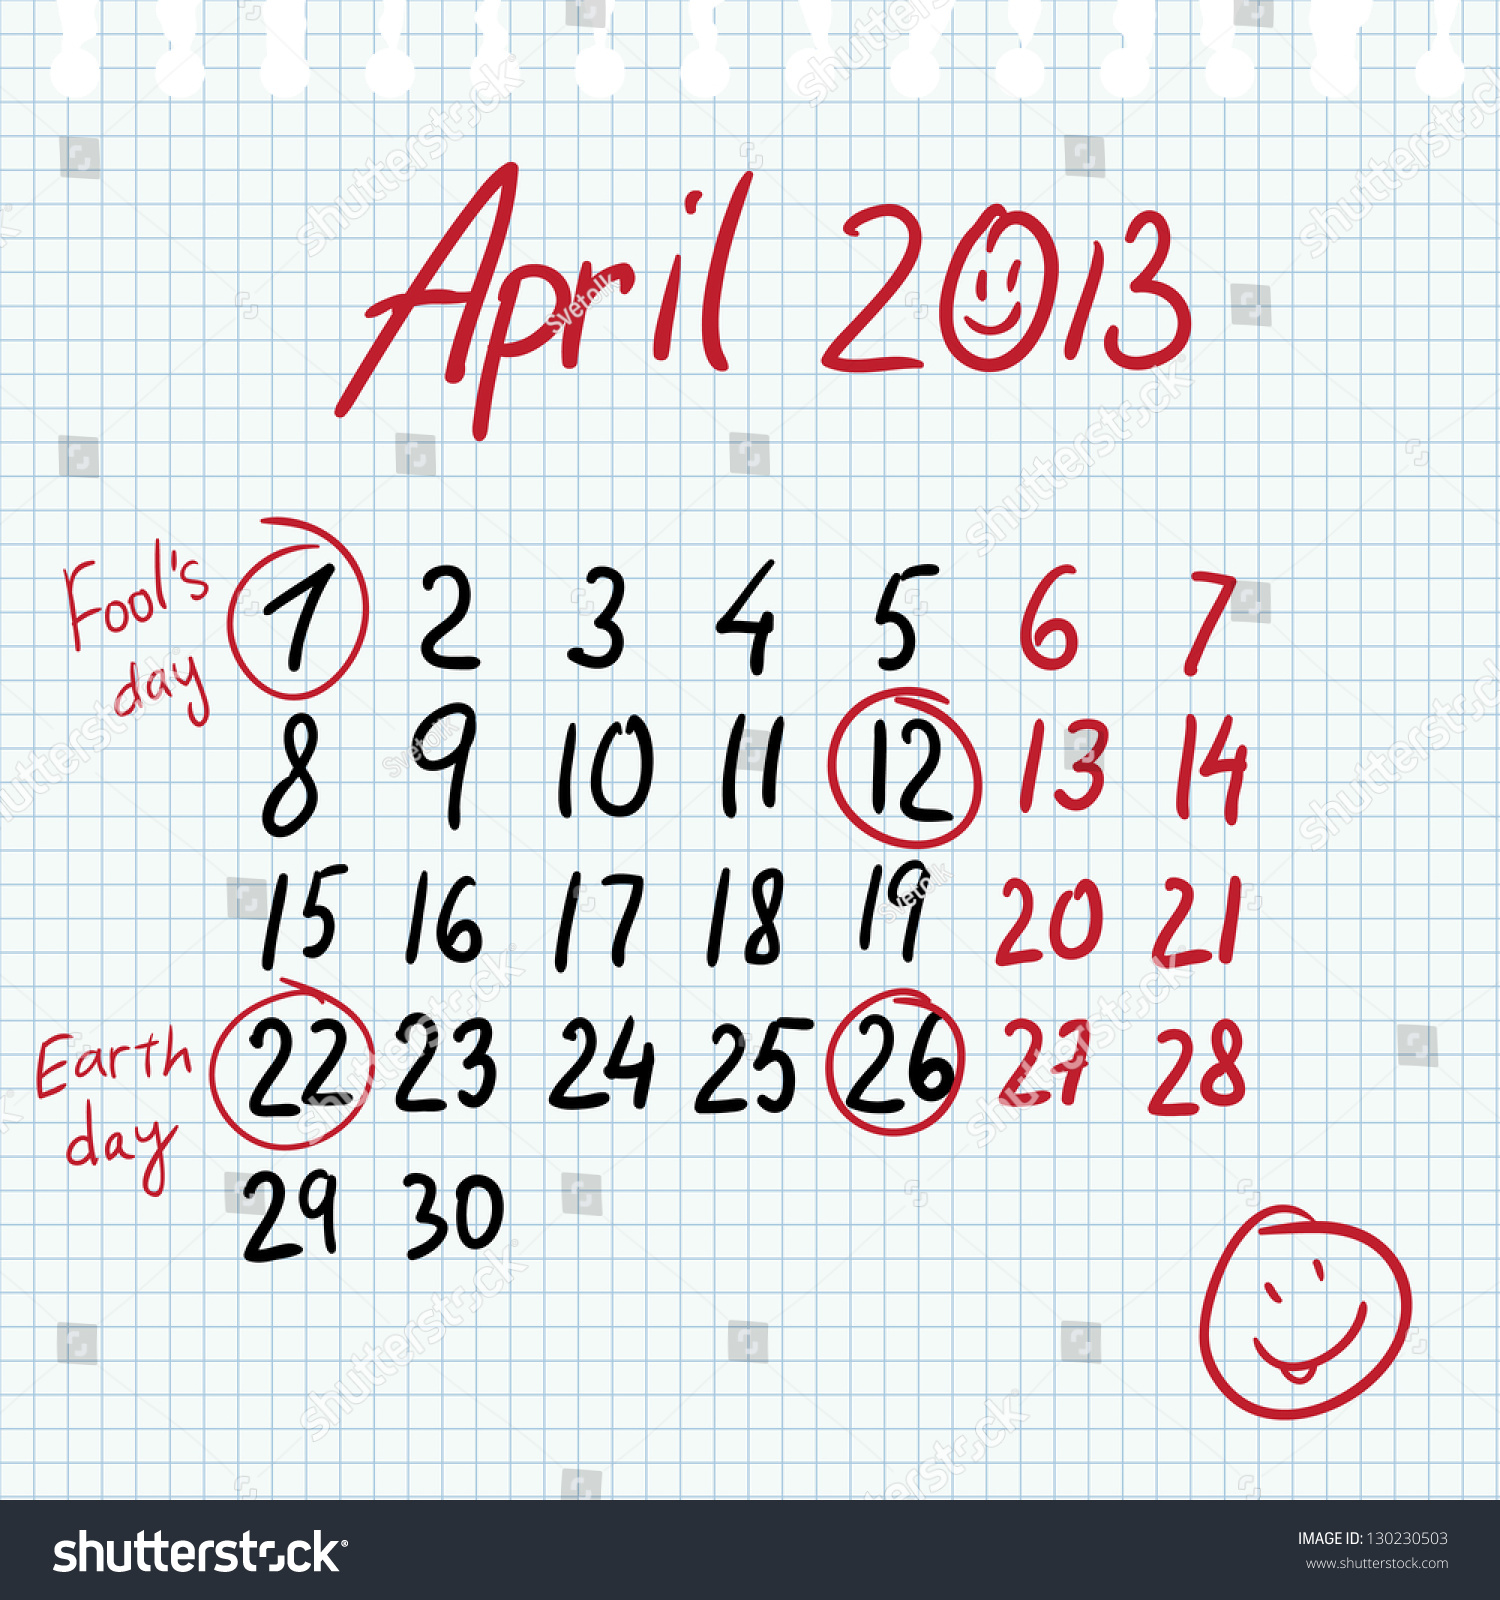 Calendar April Fools : Calendar april in sketch style on notebook sheet with